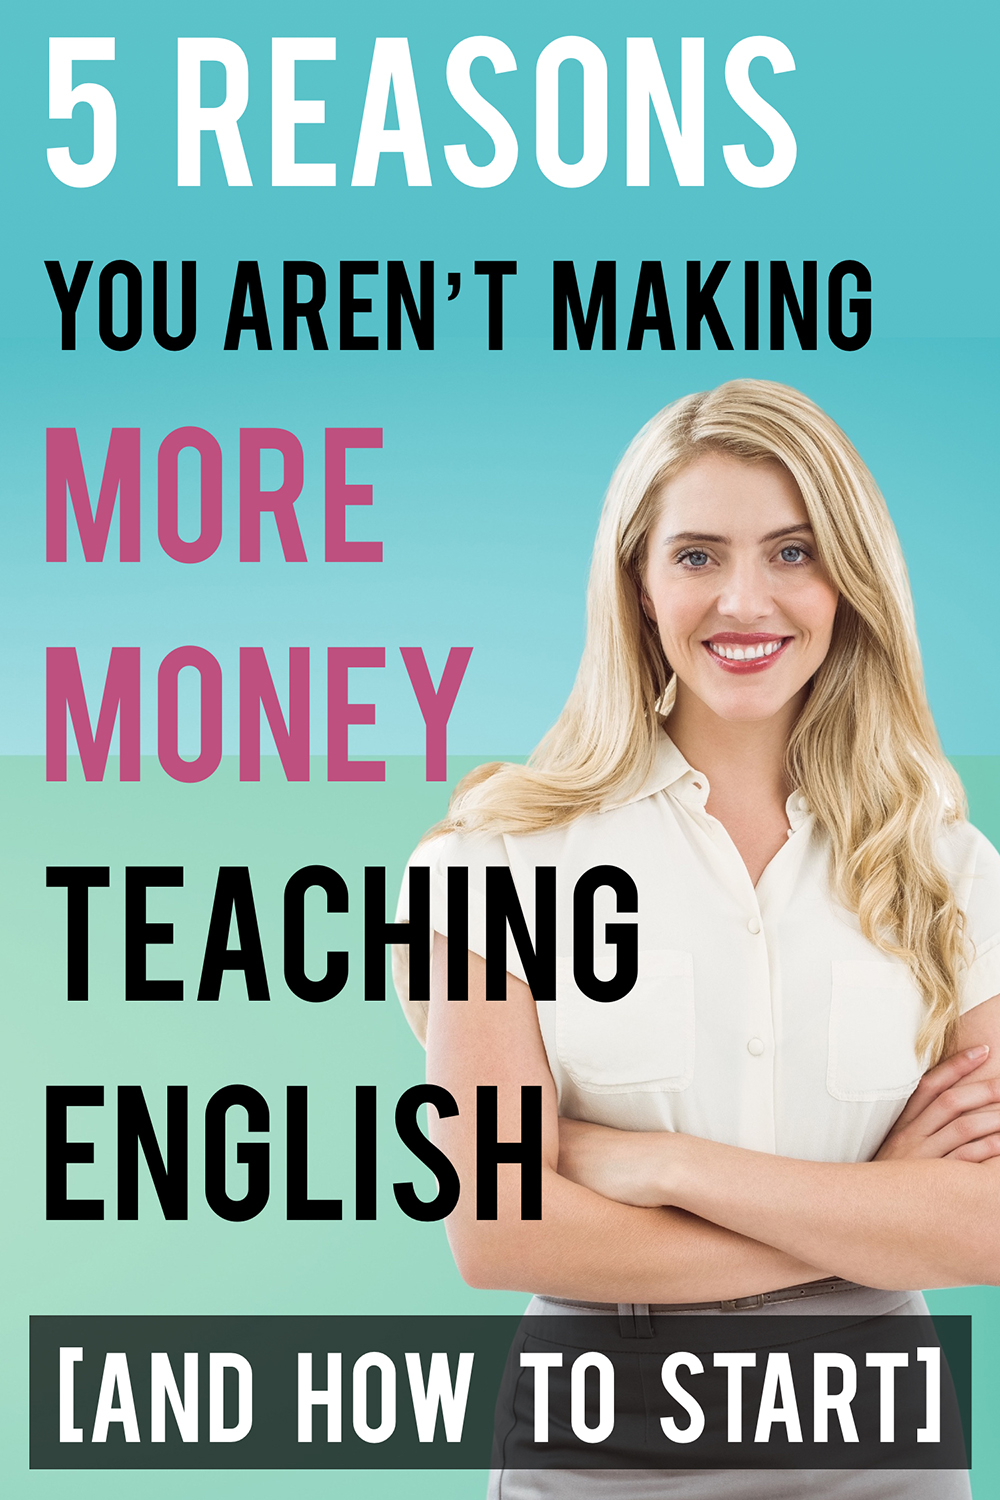 5 Ways to make more money teaching english 1.001.jpeg.001.jpeg